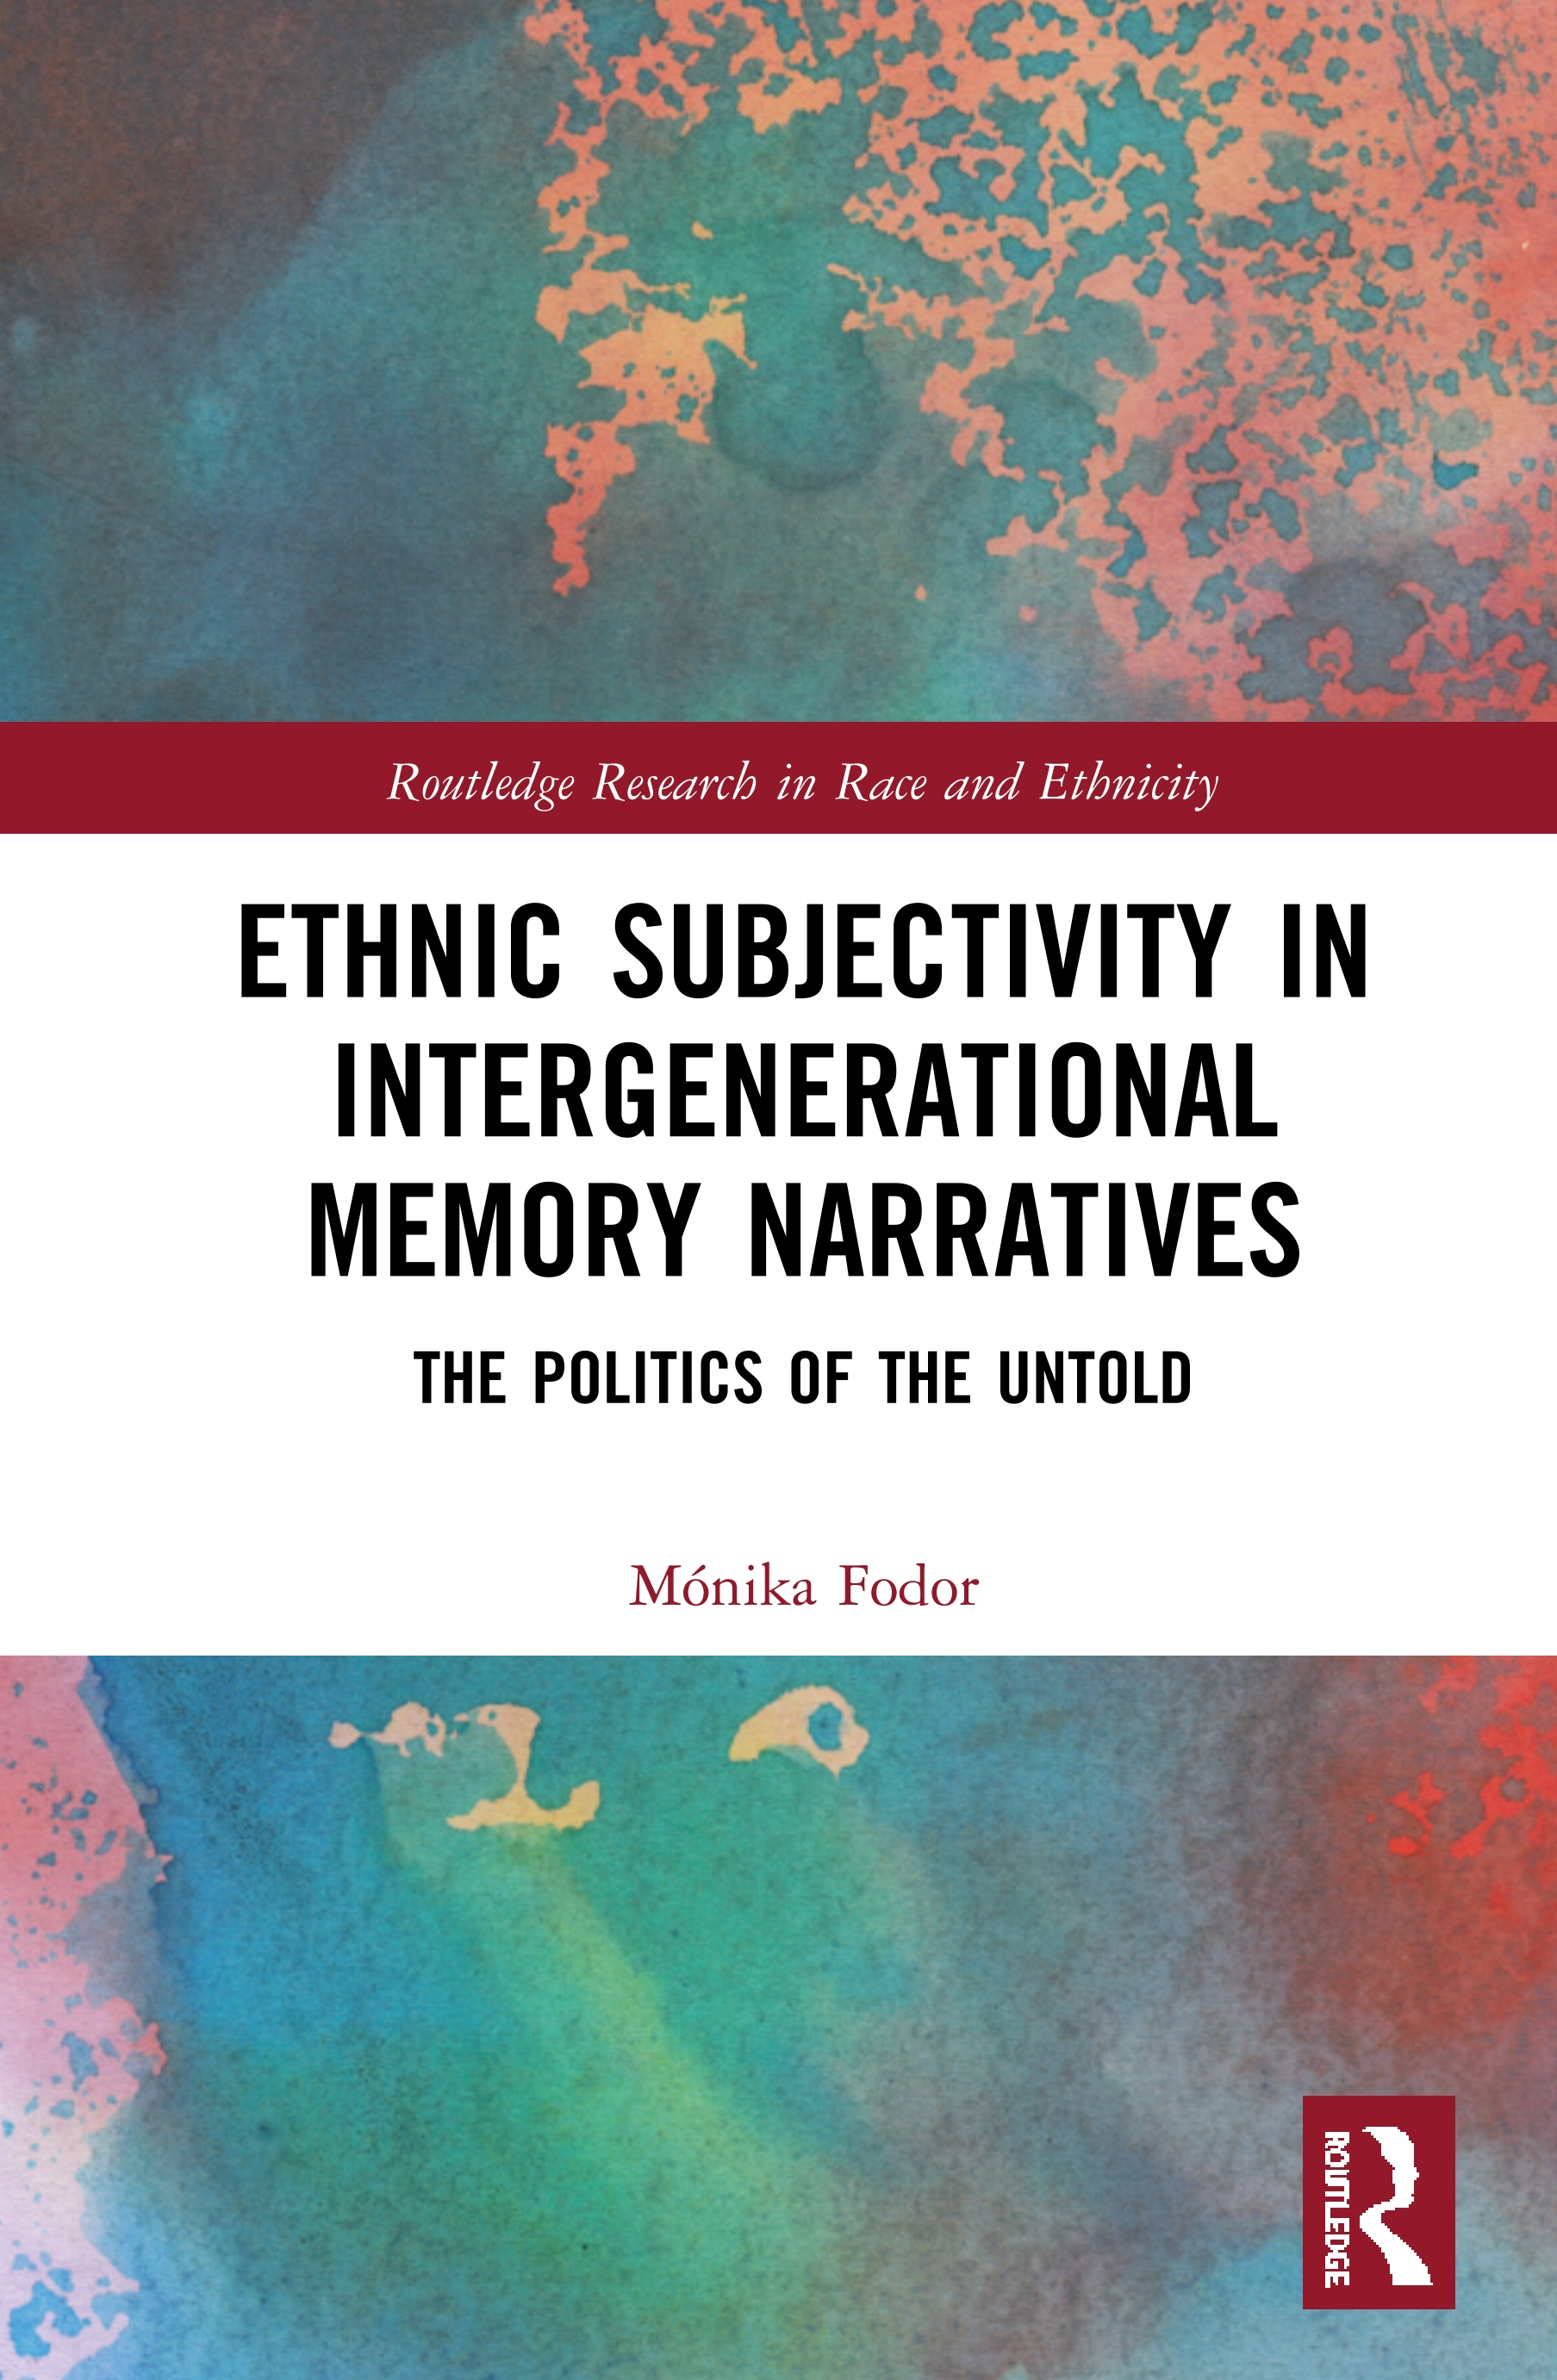 Ethnic Subjectivity in Intergenerational Memory Narratives: Politics of the Untold book cover